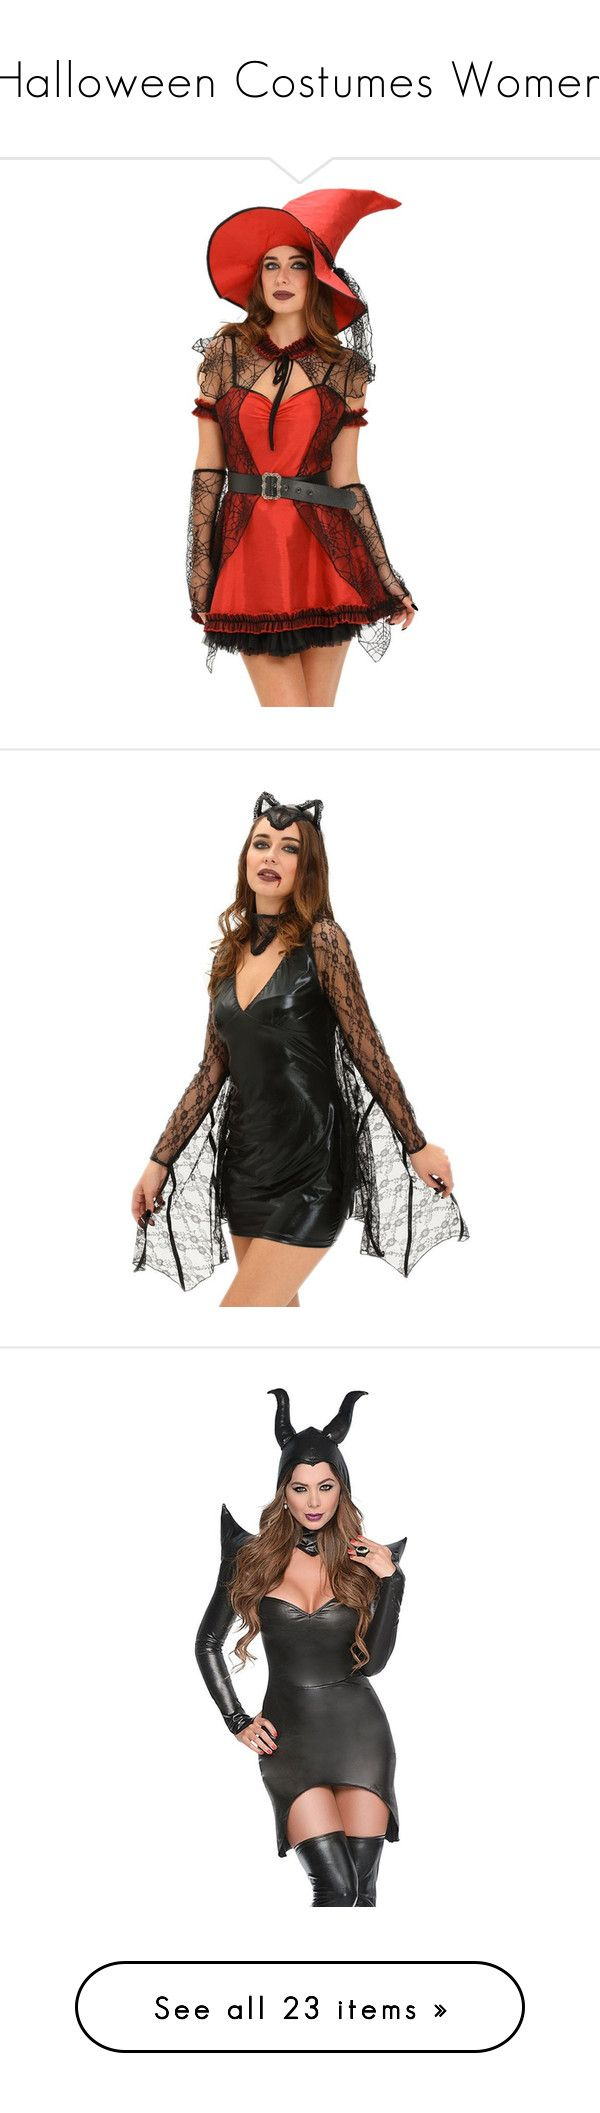 """""""Halloween Costumes Women"""" by modebuy on Polyvore featuring halloweencostumes"""